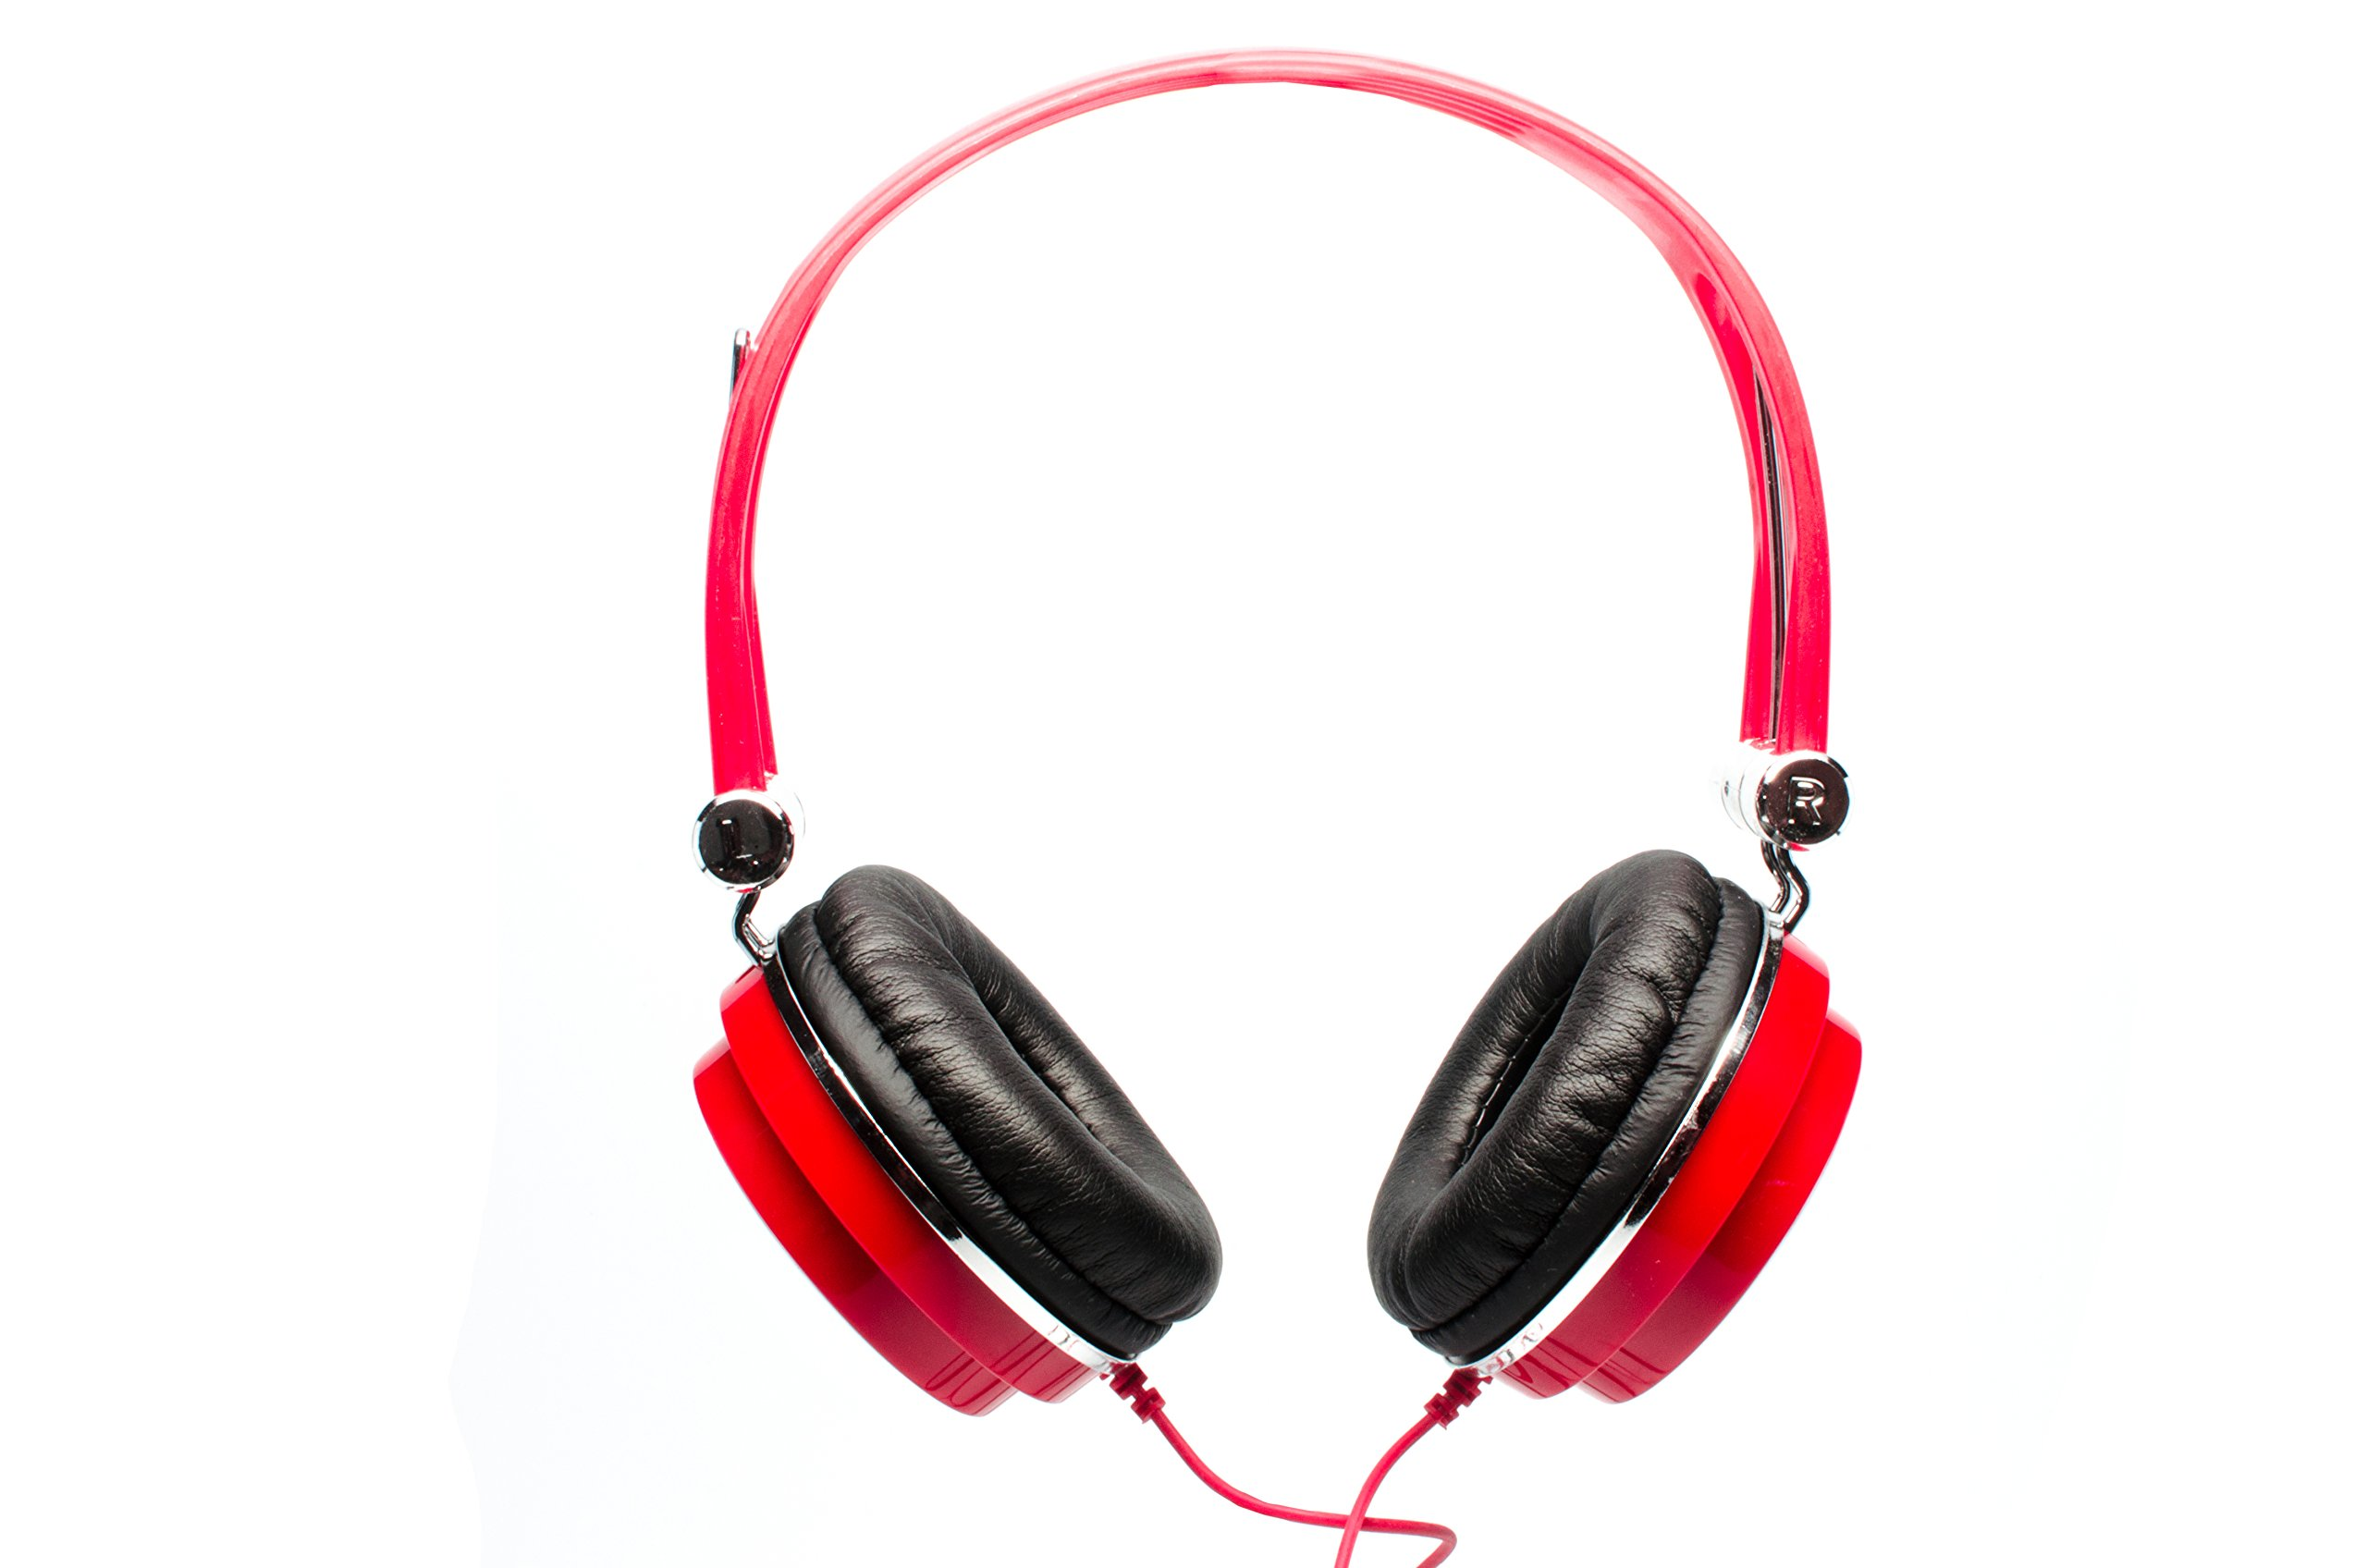 CAD Audio MH100R Closed-Back Mid-Size Studio Headphones, Red by CAD Audio